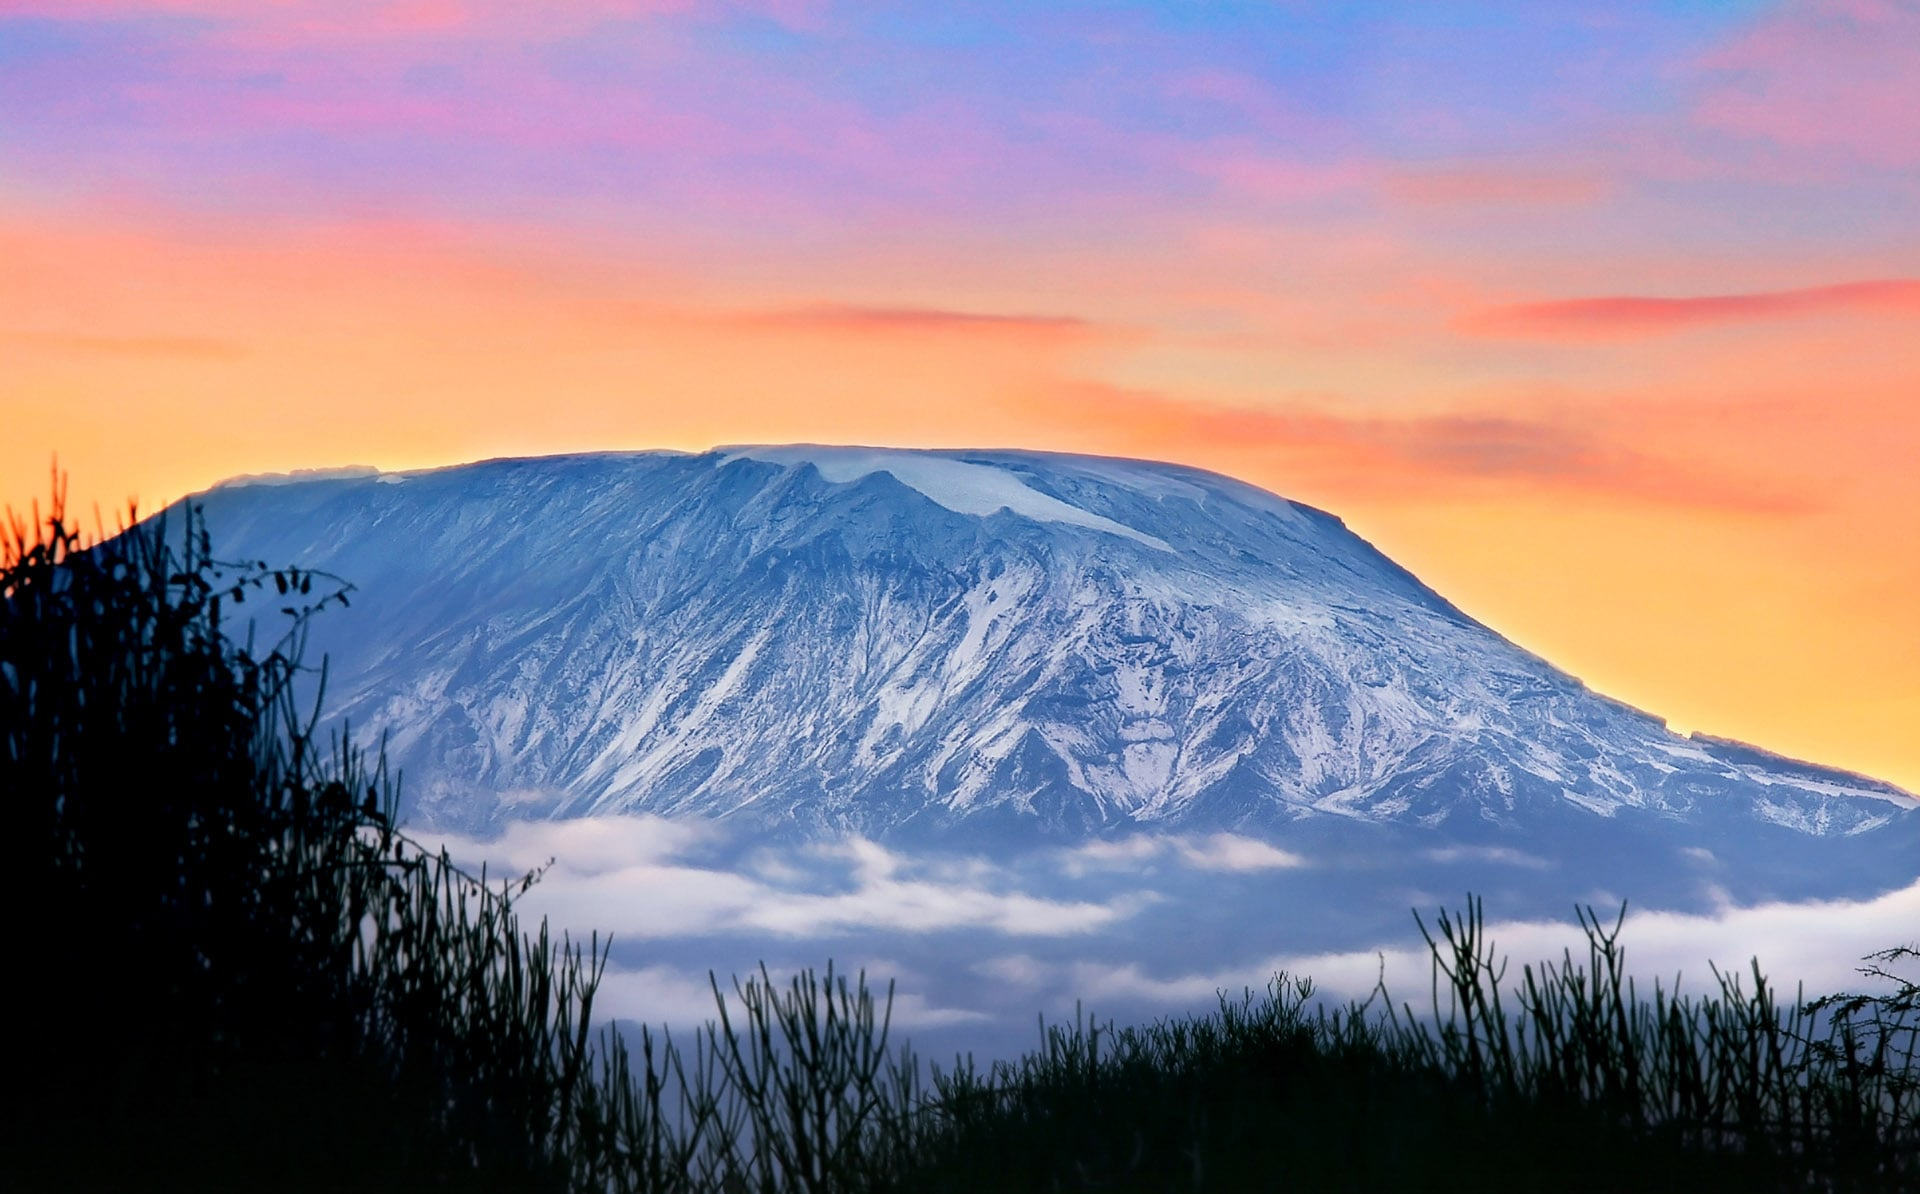 Evening on the Mount Kilimanjaro, Tanzania